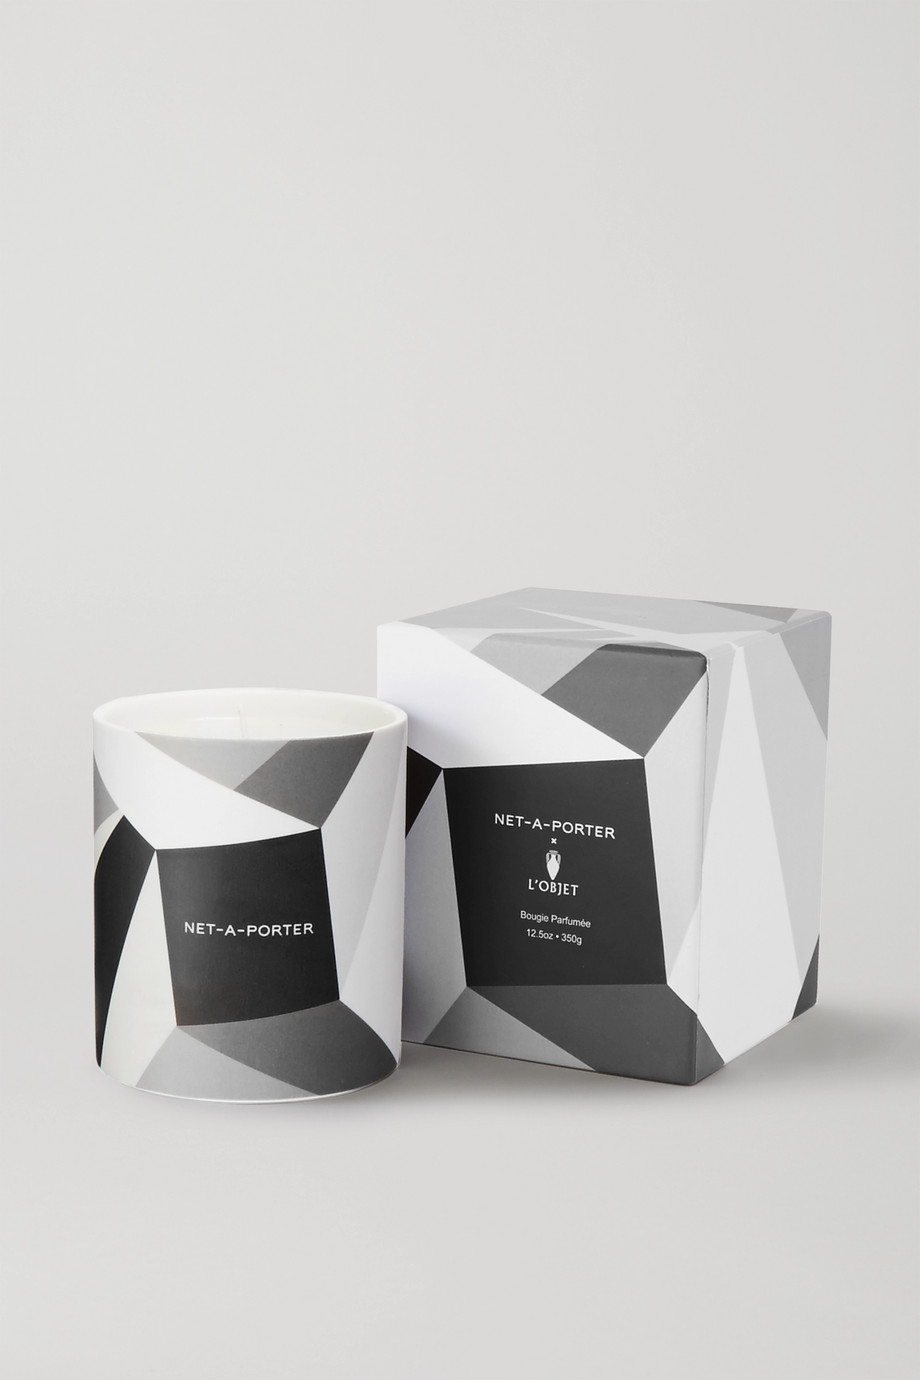 L'OBJET + NET-A-PORTER 20th Anniversary Candle, 350g